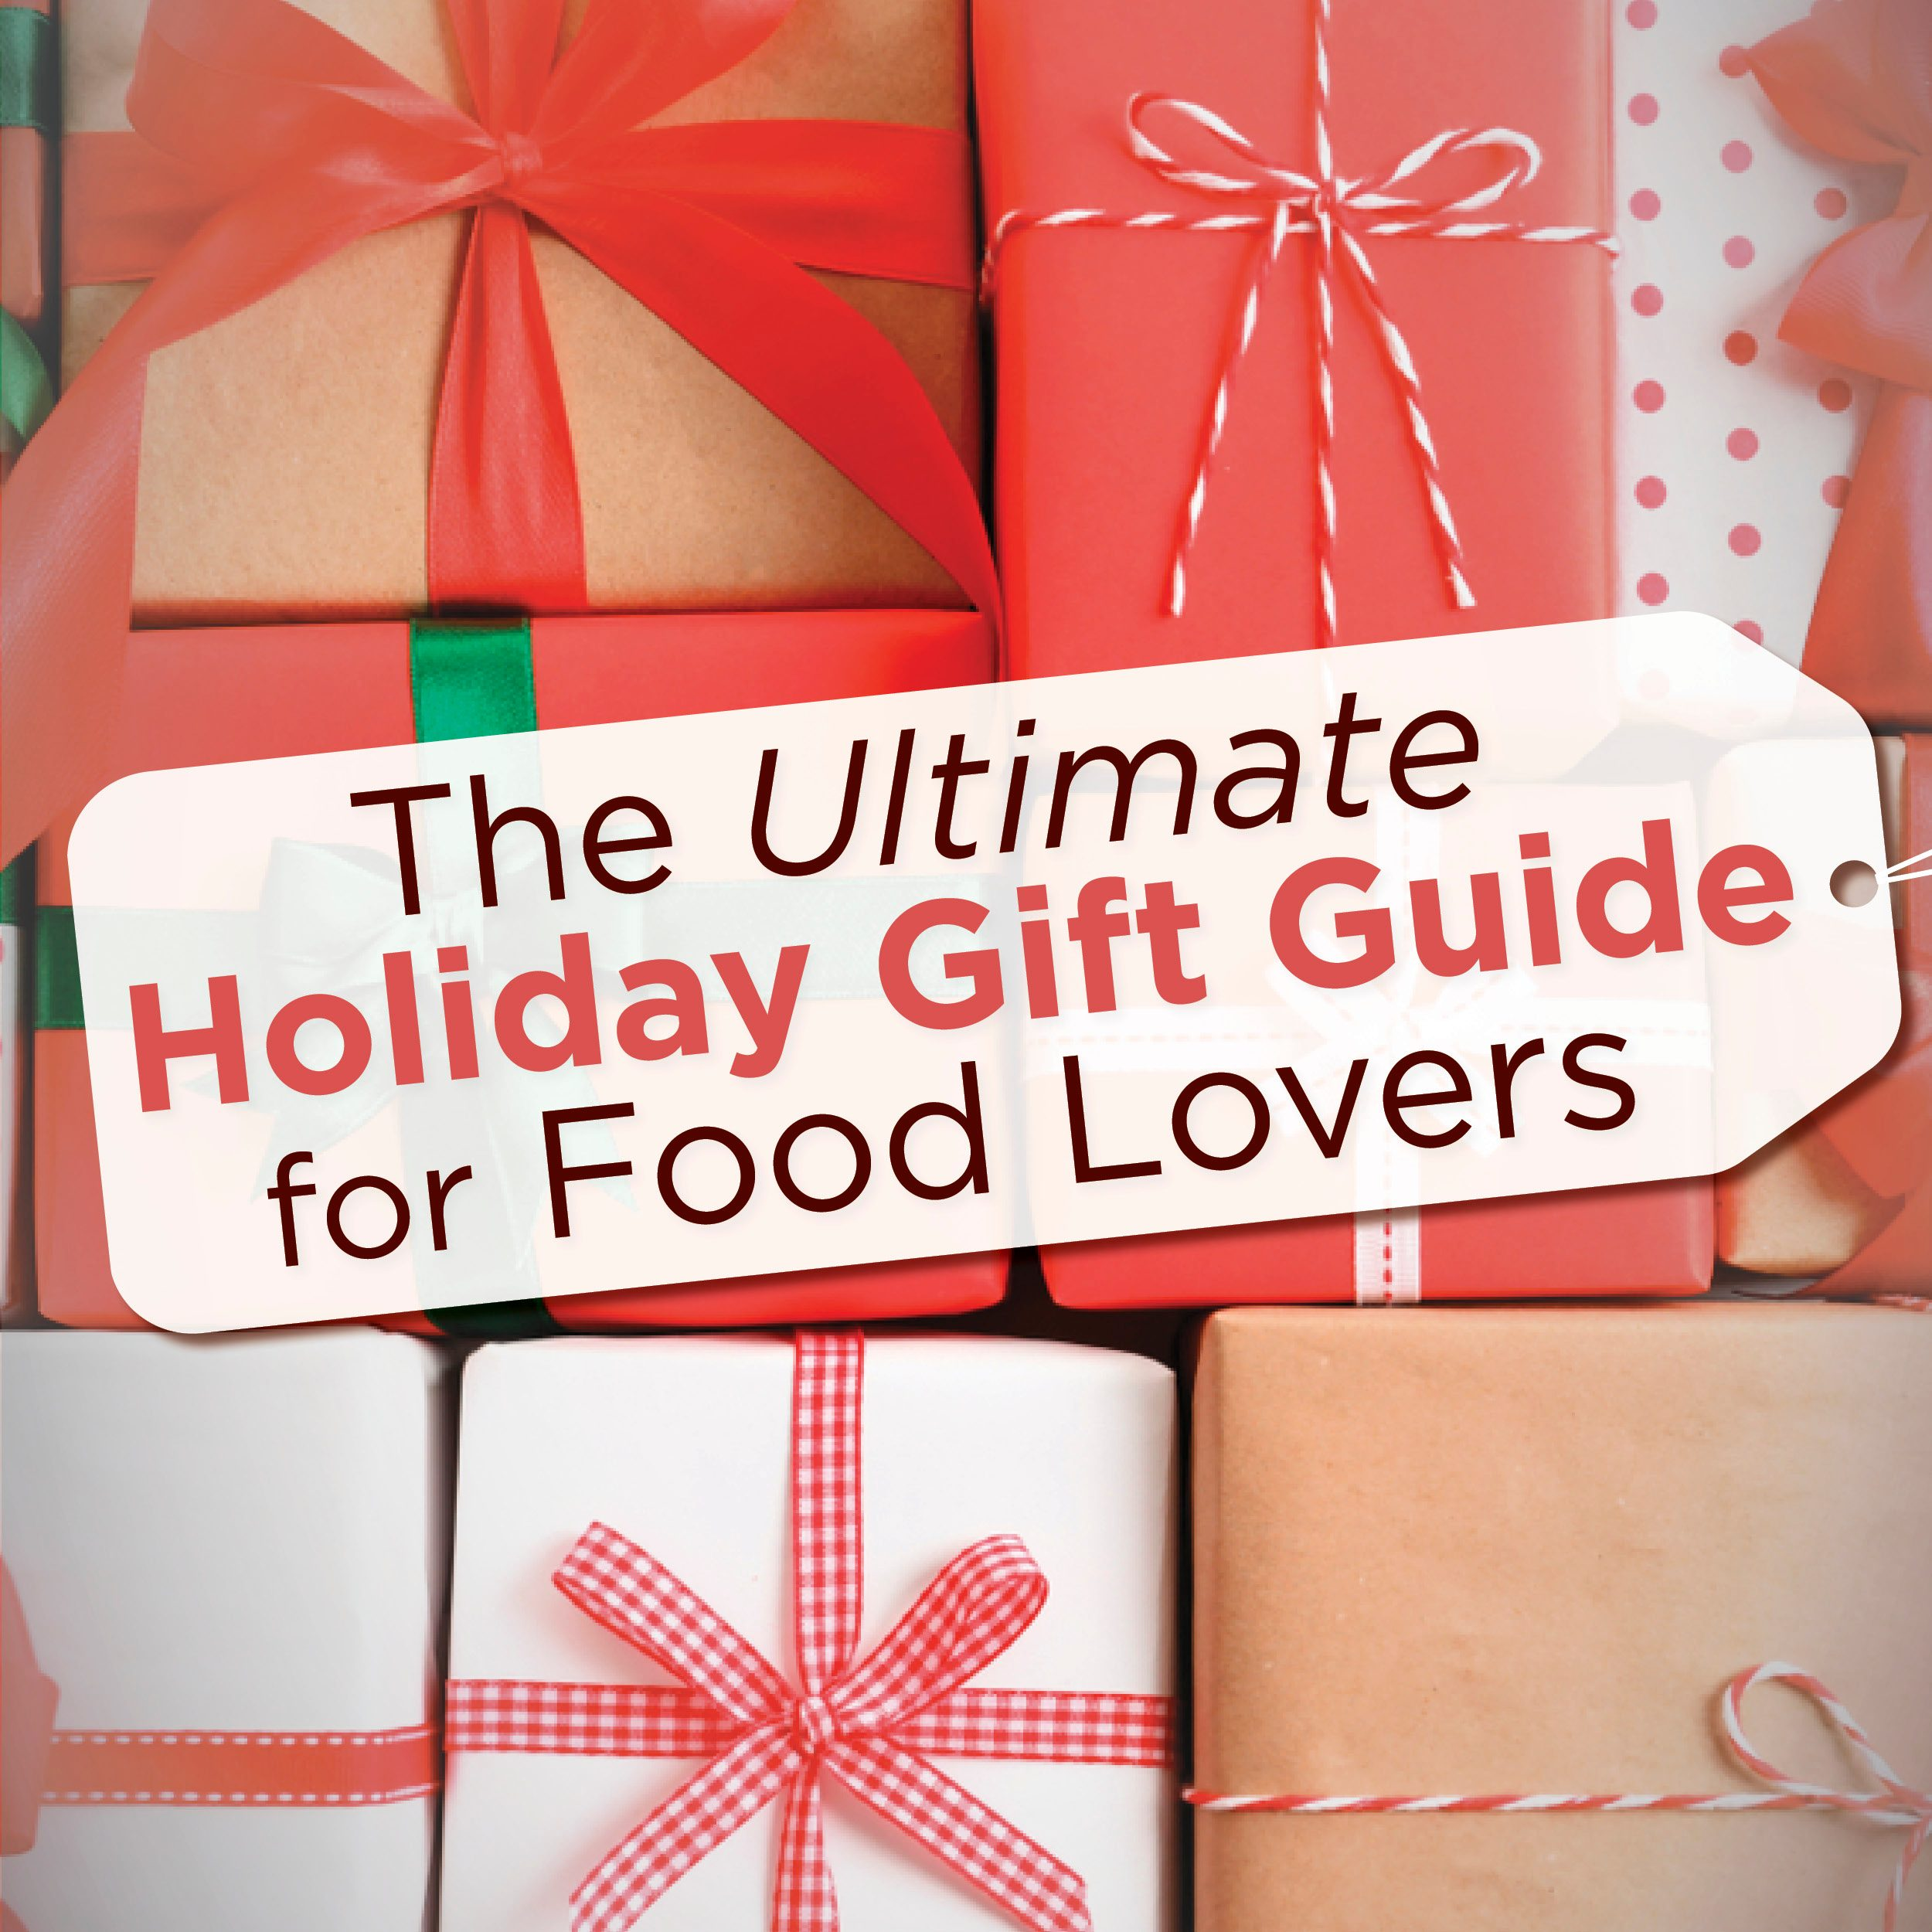 The Ultimate Holiday Gift Guide for Food Lovers | Taste of Home